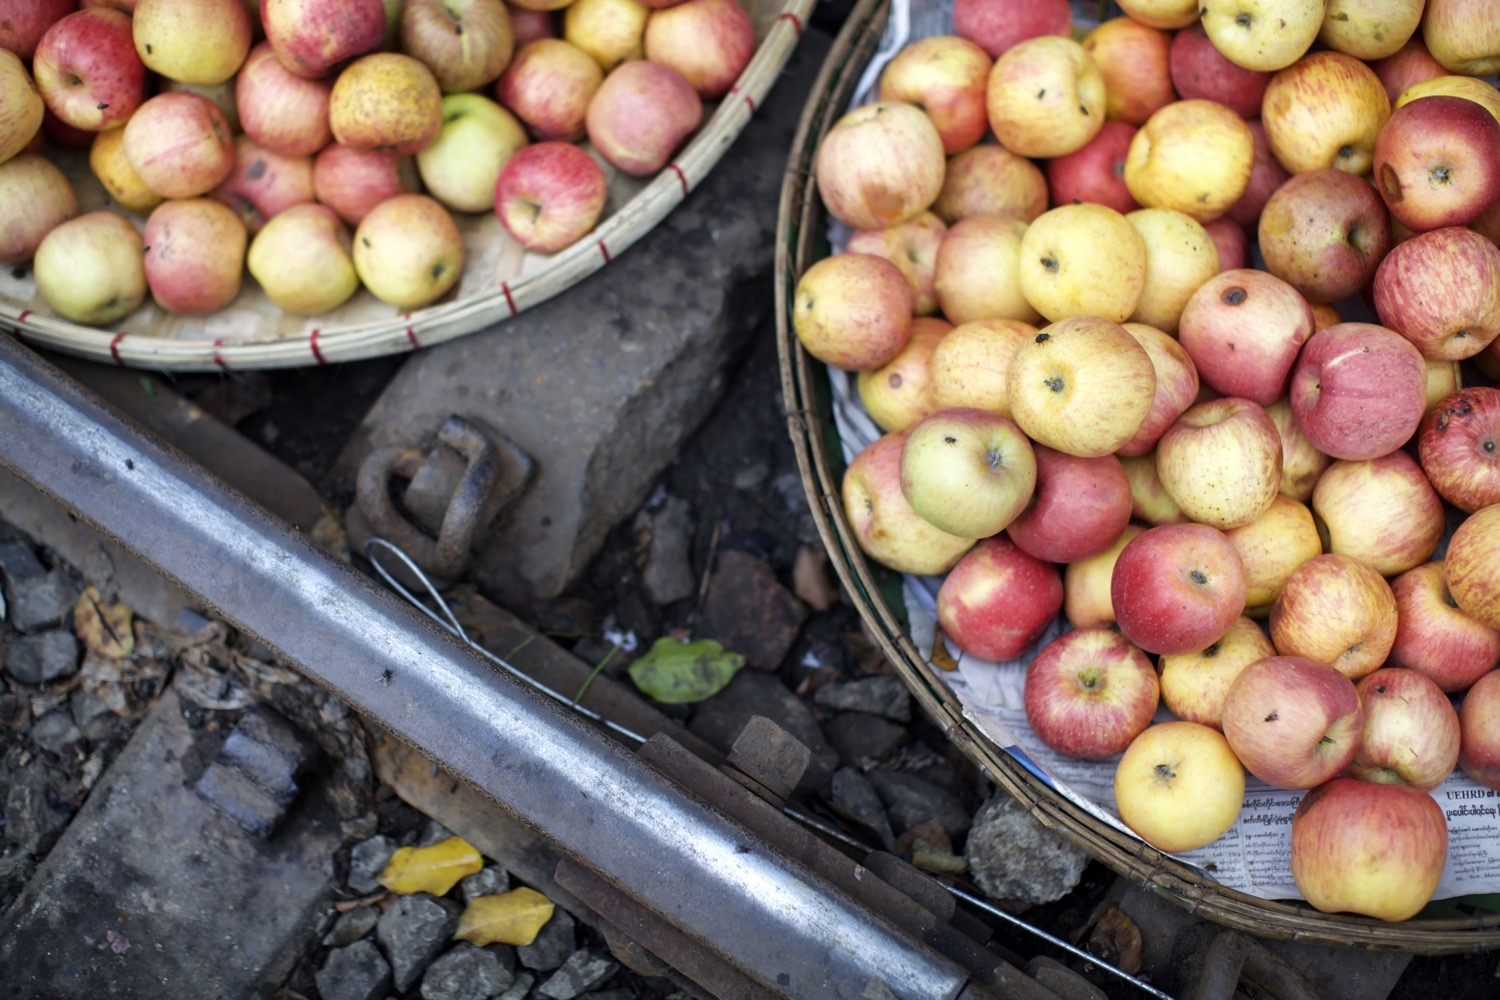 apples in baskets next to train tracks - Five Essential Shots You Need to Get for Street Market Photography